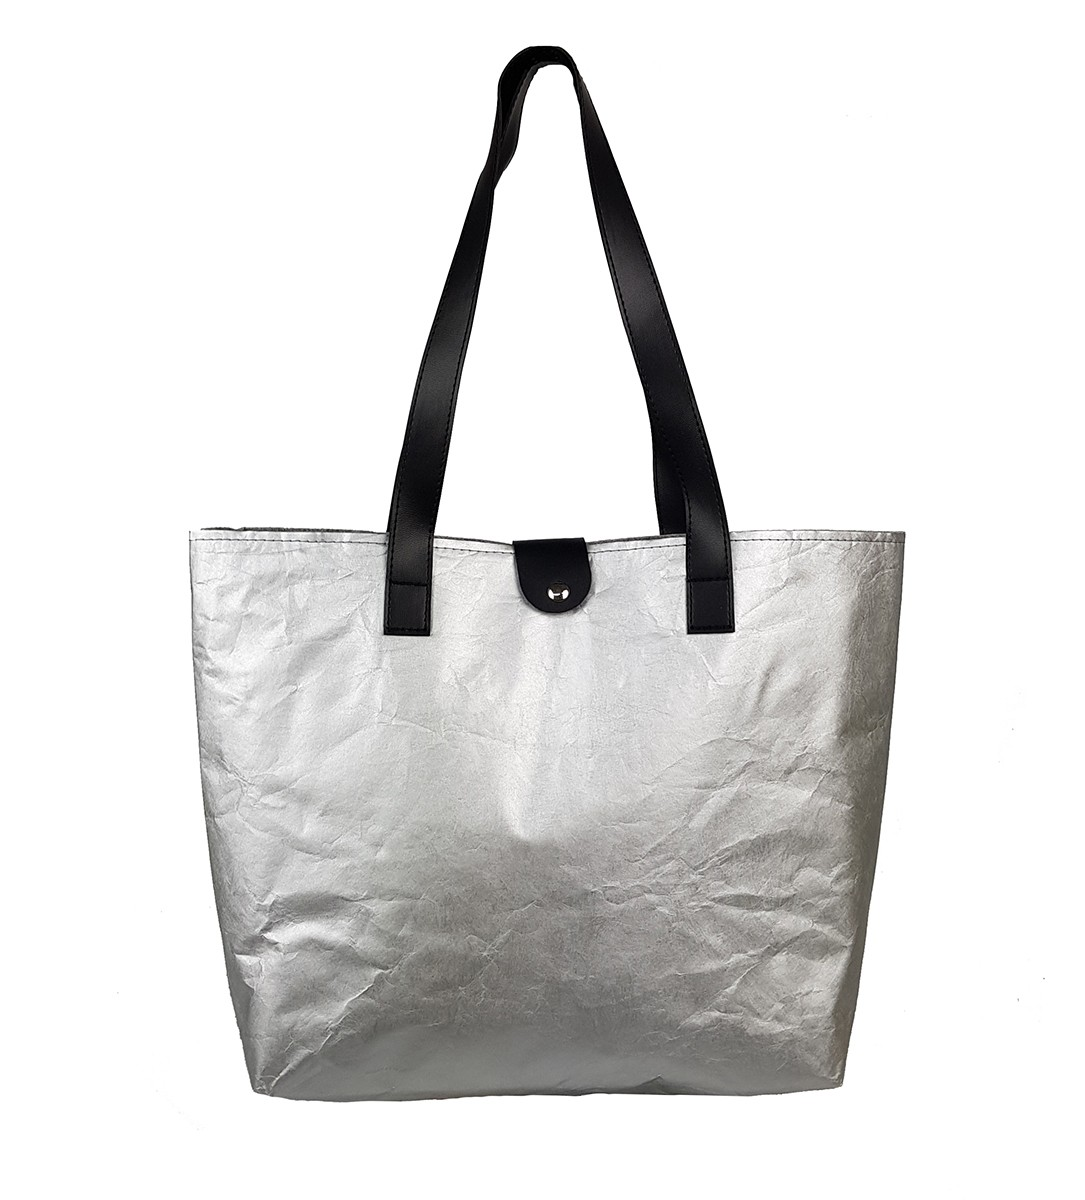 Tyvek Foldable Tote Bag ​Wholesale Manufacturers, Tyvek Foldable Tote Bag ​Wholesale Factory, Supply Tyvek Foldable Tote Bag ​Wholesale